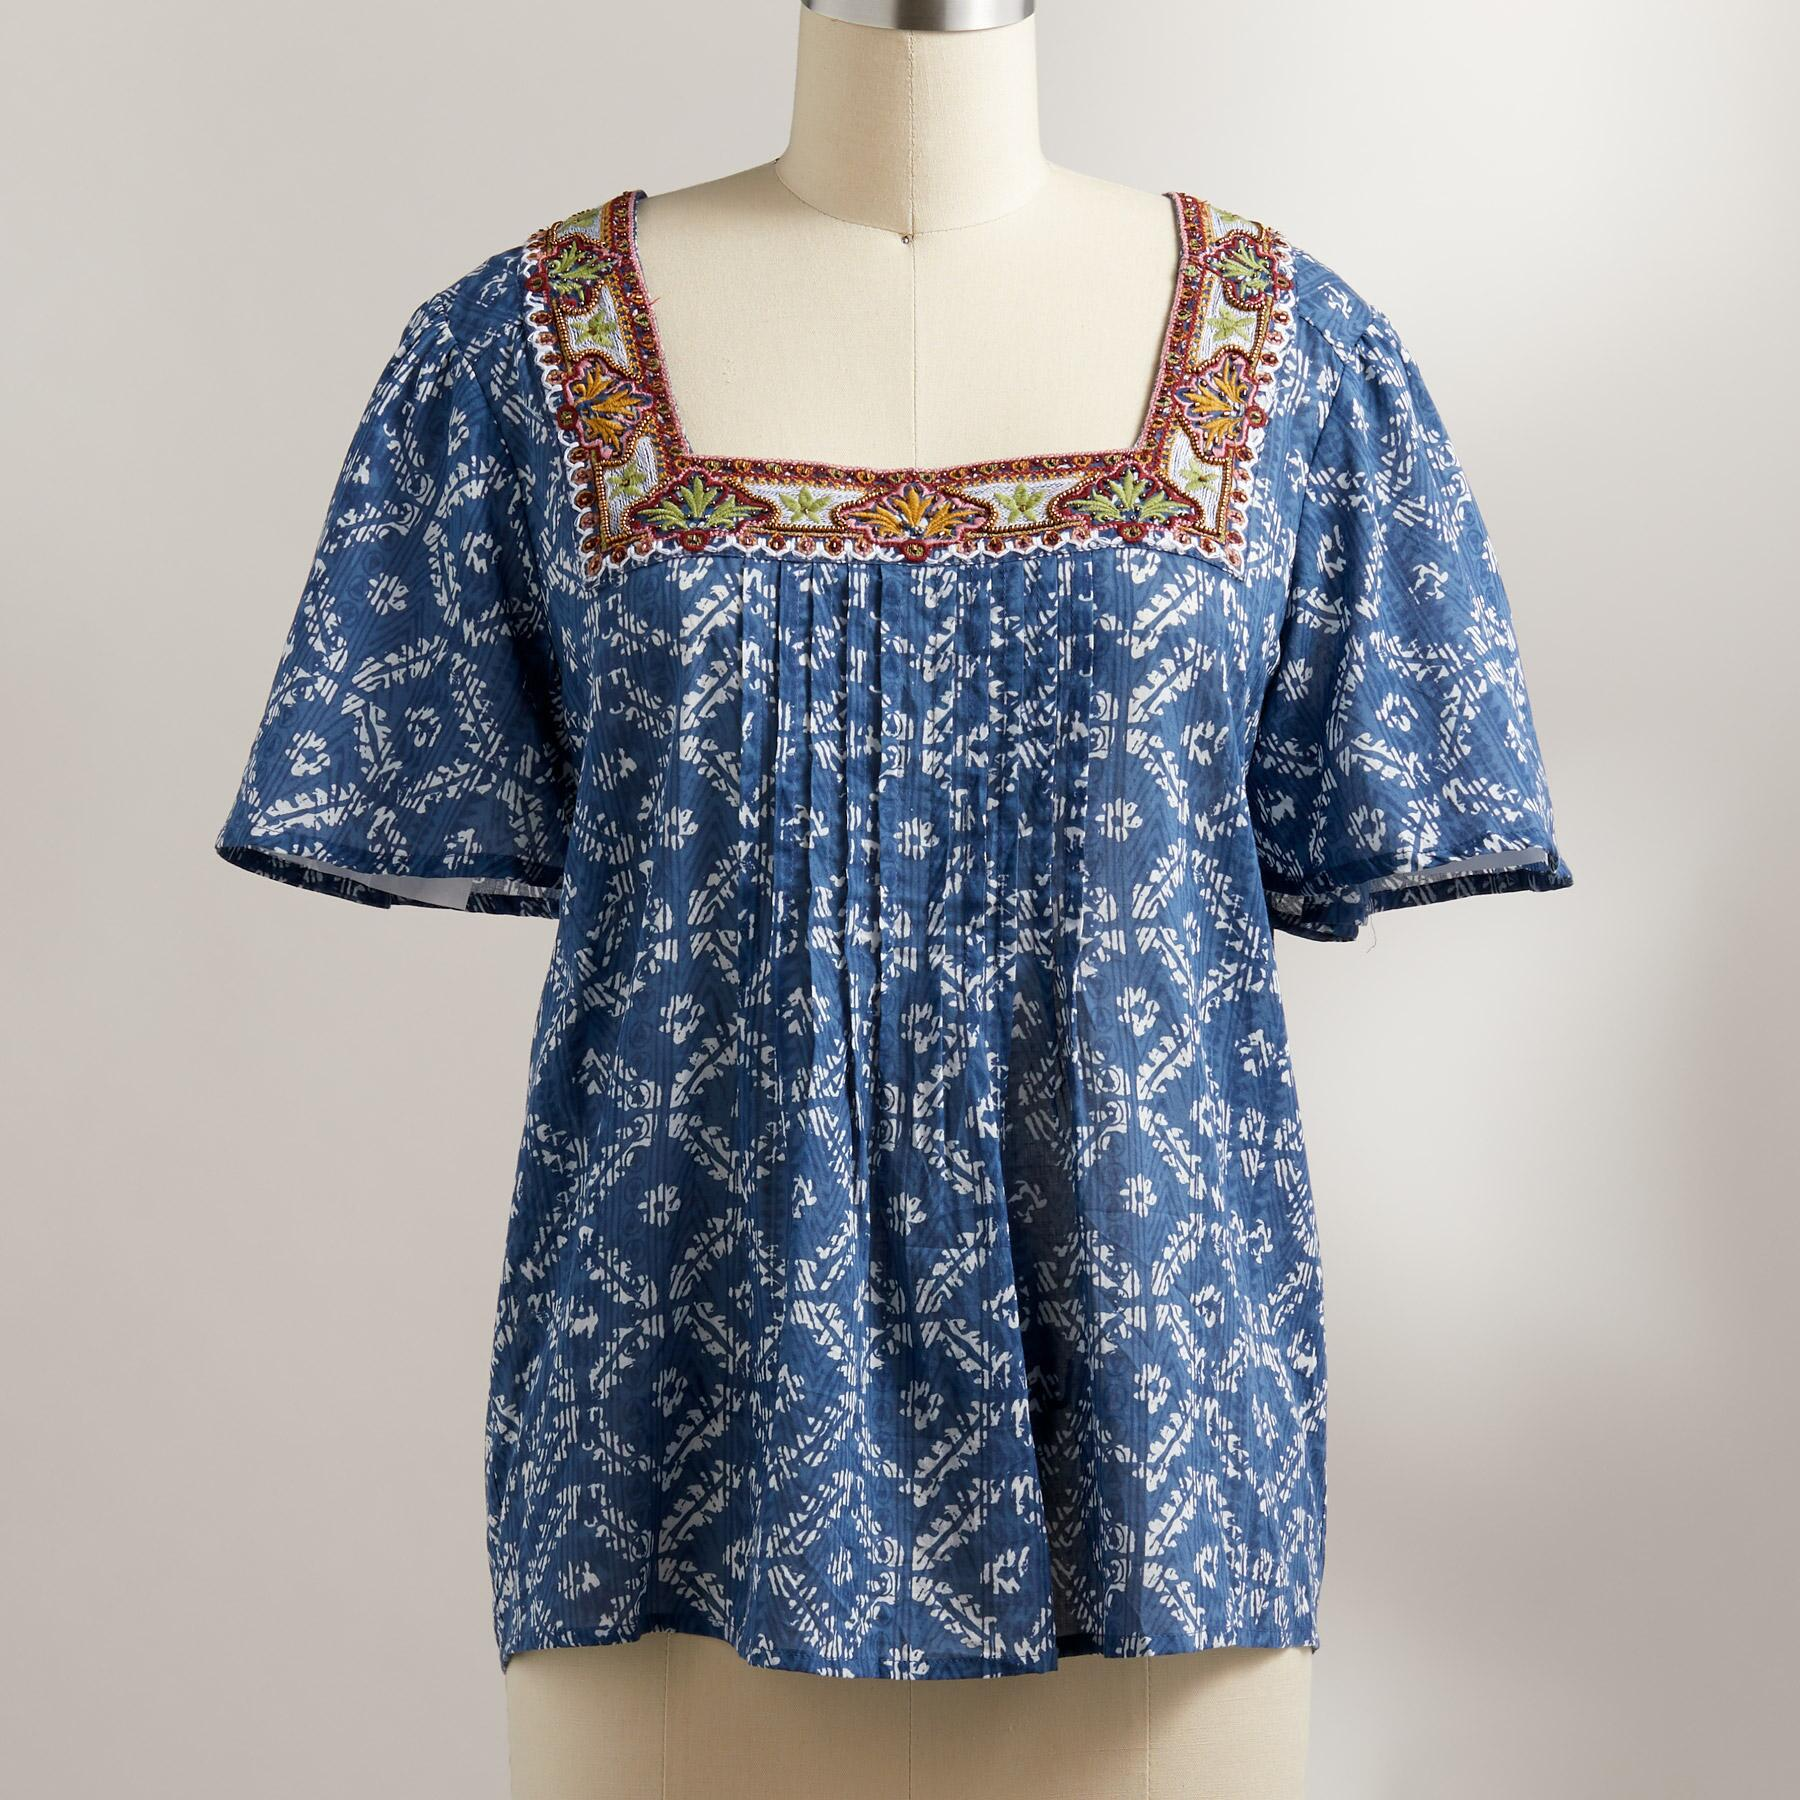 OUTBACK TOP PETITE: View 2